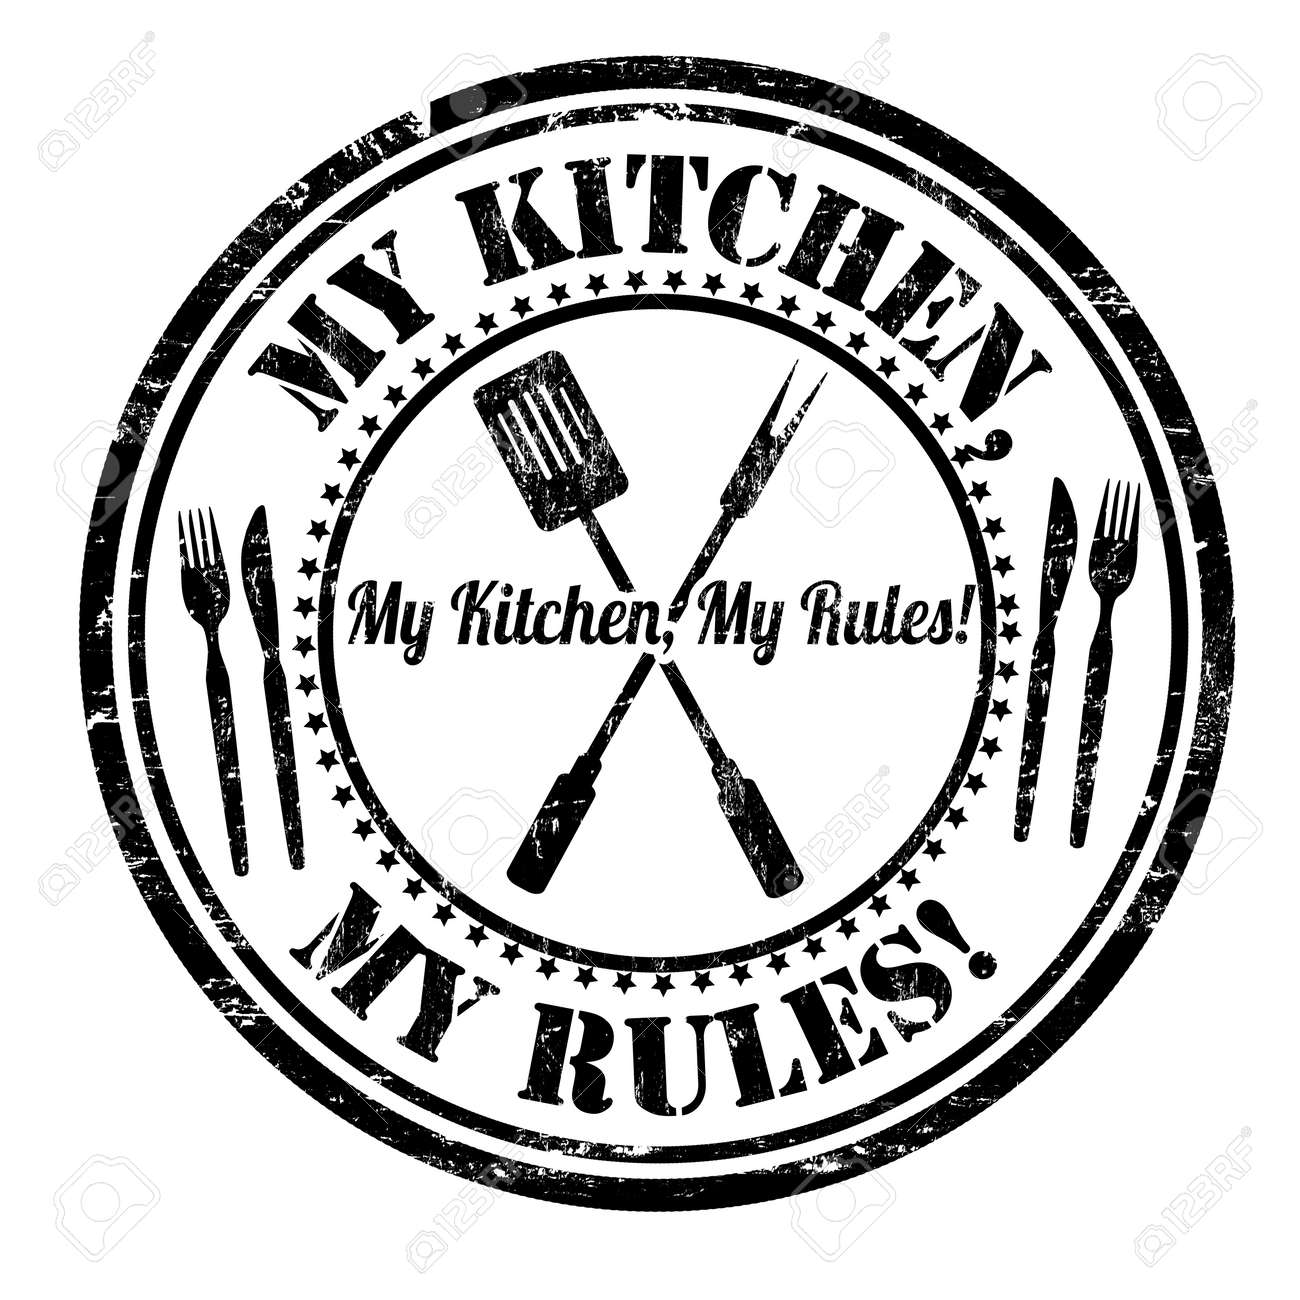 My Kitchen My Rules Grunge Rubber Stamp On White Background ...